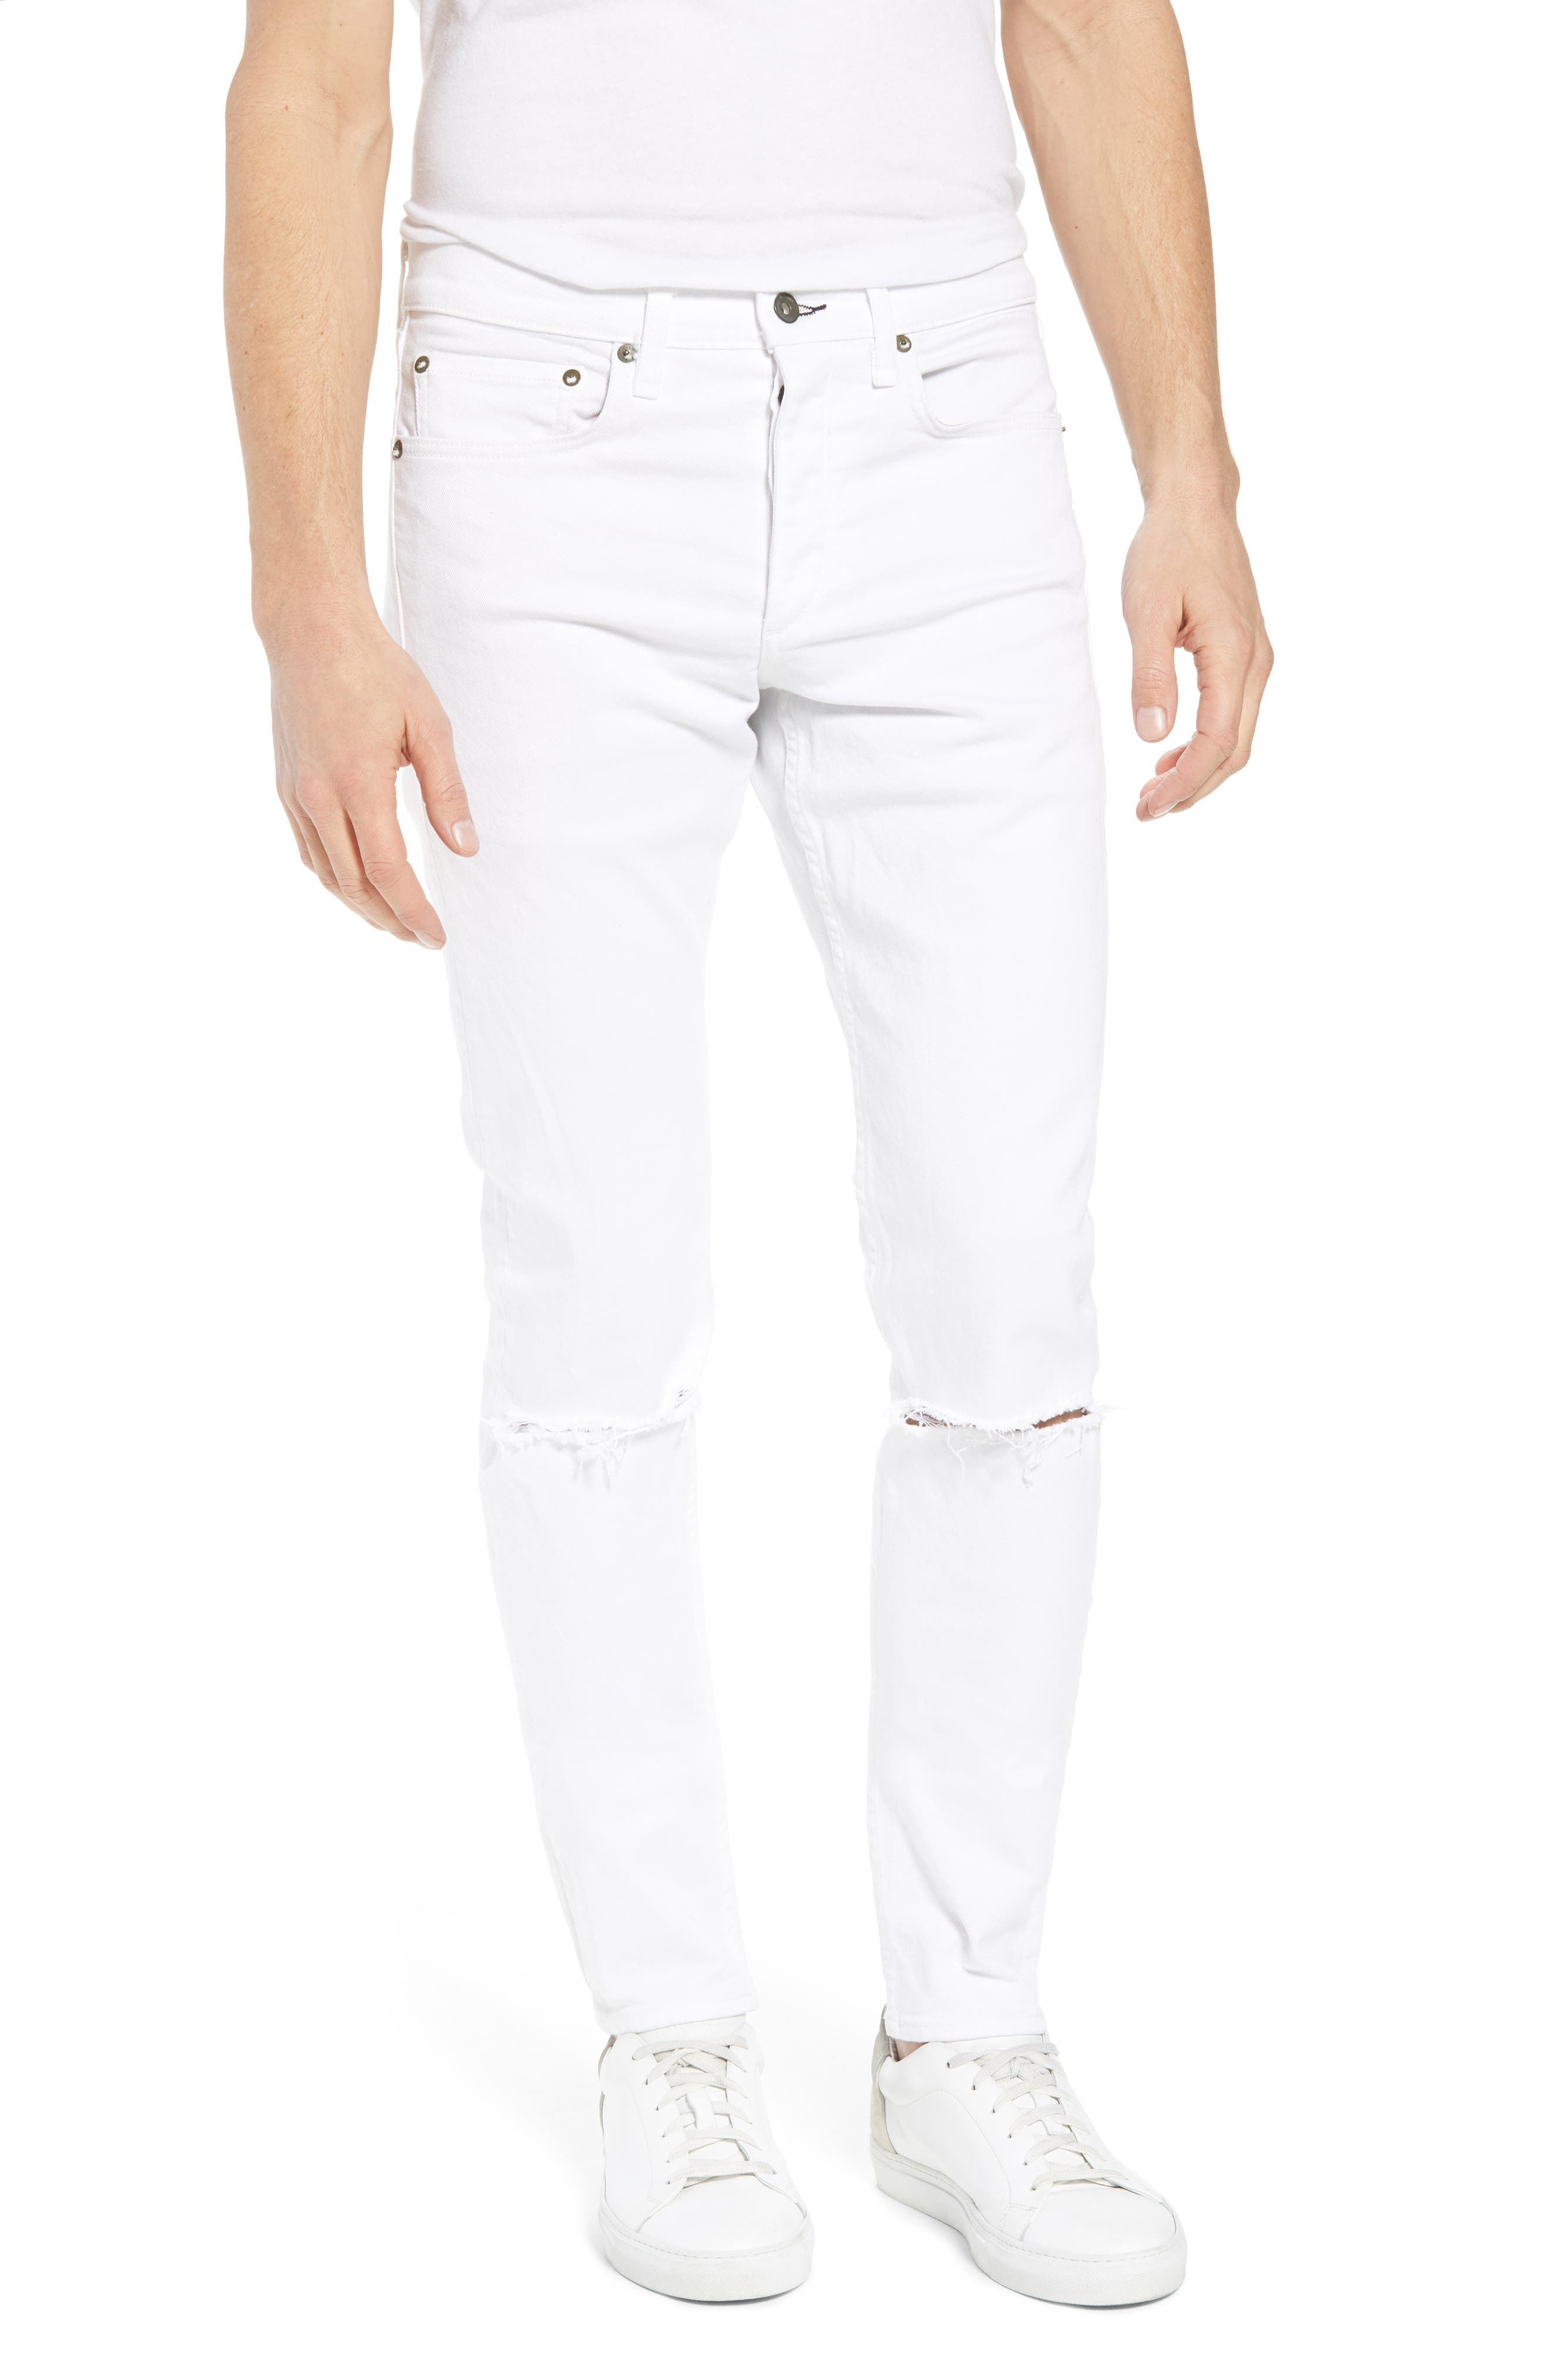 Fit 1 Skinny Fit Jeans,                         Main,                         color, White W/ Holes